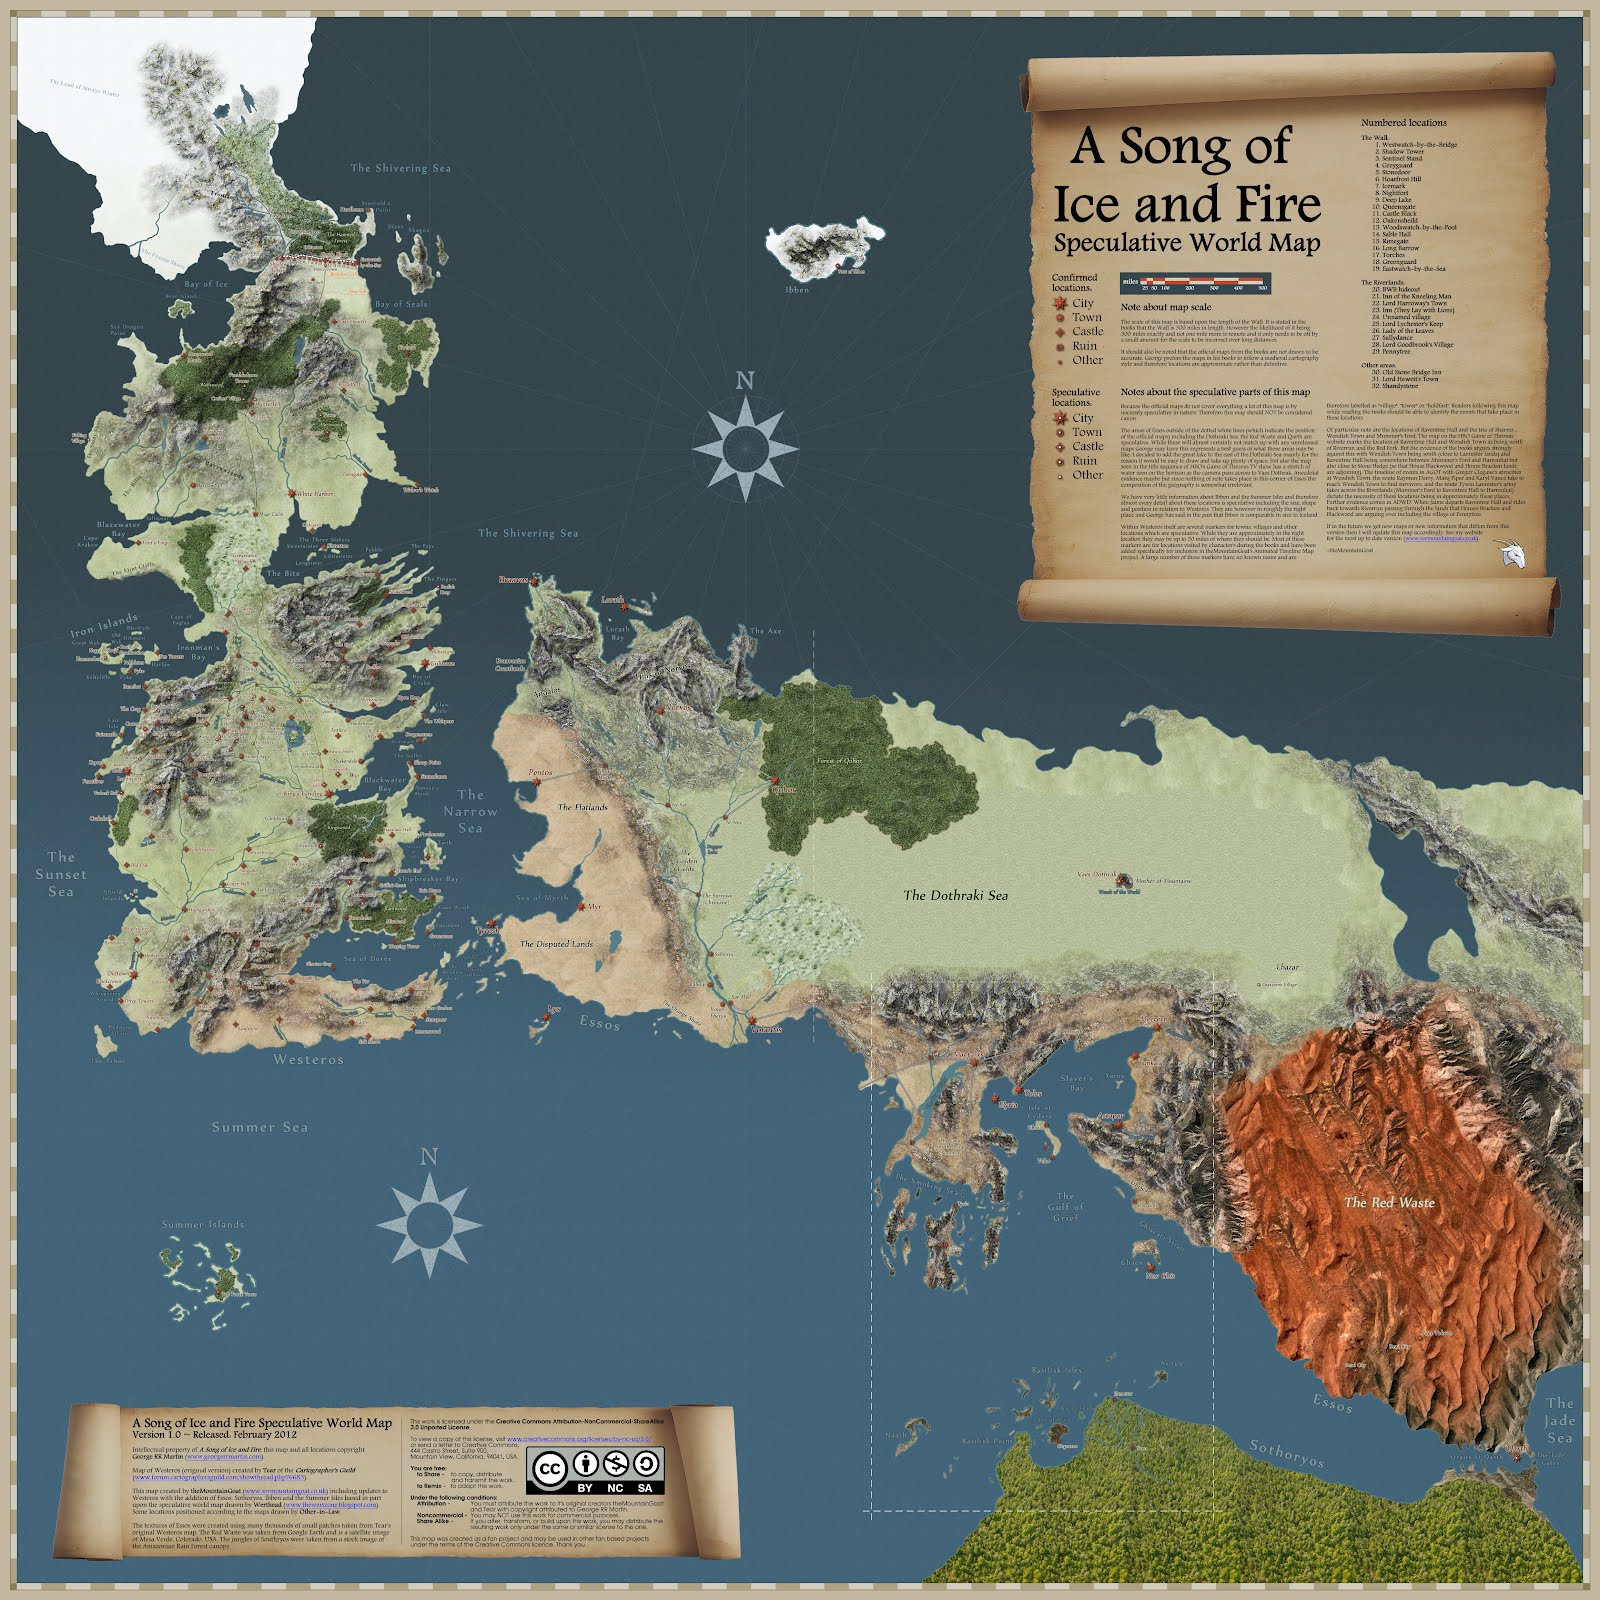 song of ice and fire speculative map